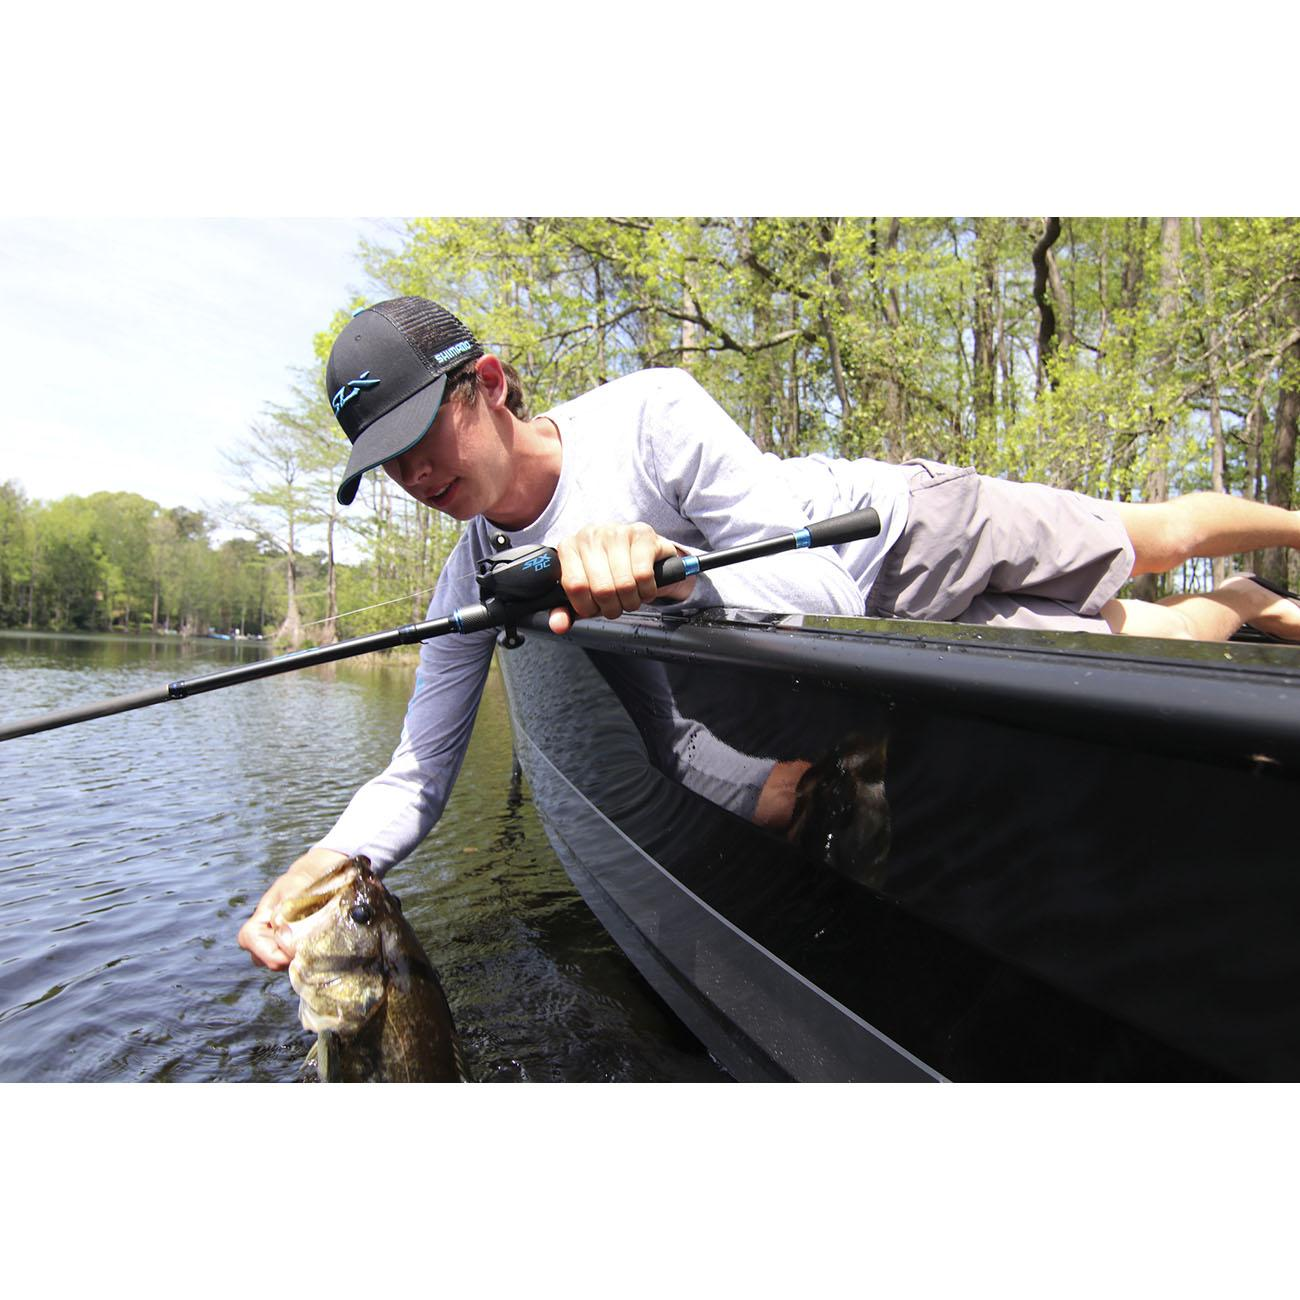 Shimano SLX DC 150 Low-Profile Casting Reel In Use